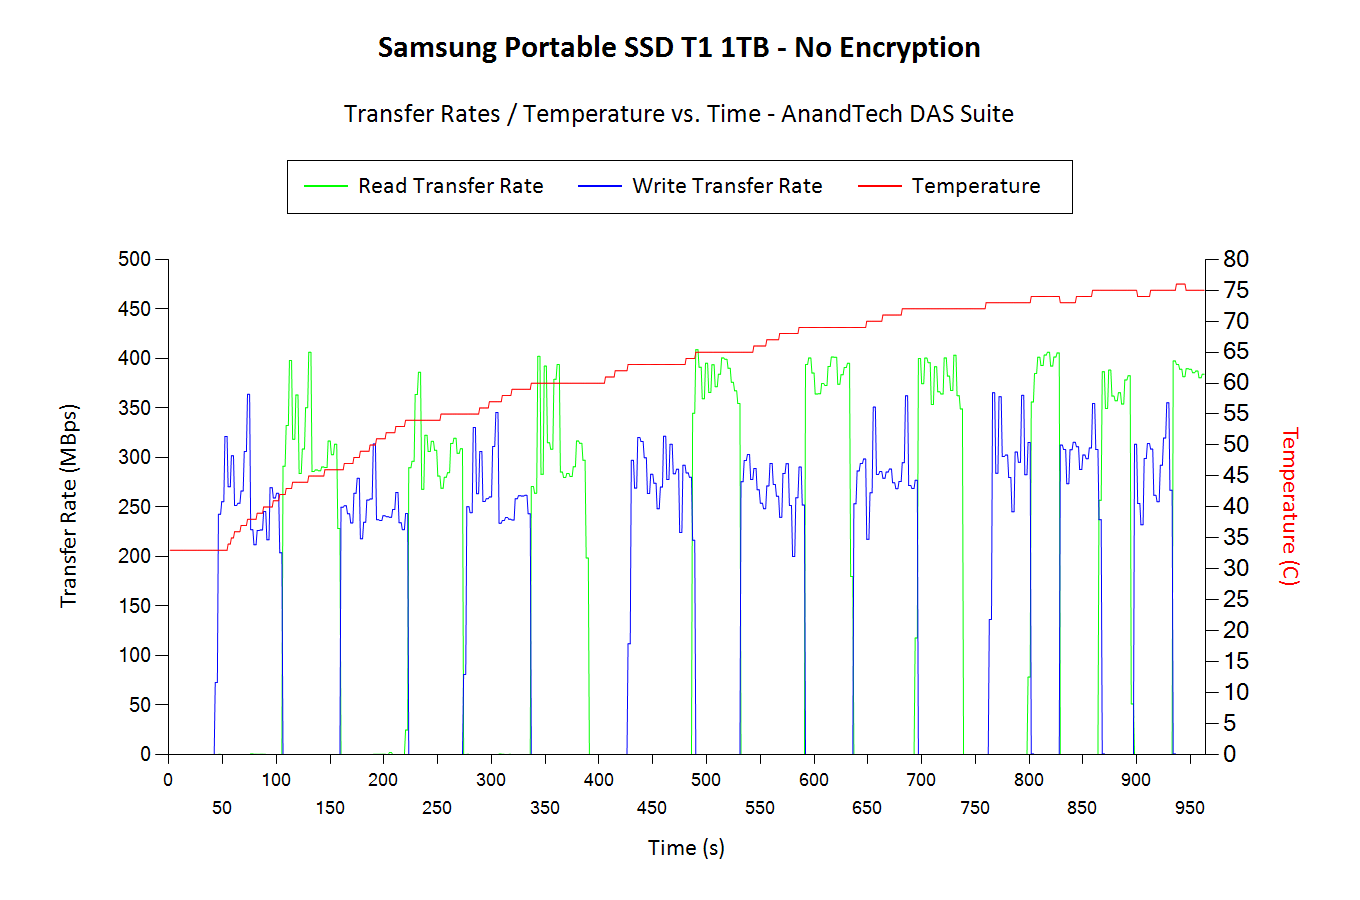 Performance Consistency And Concluding Remarks Samsung